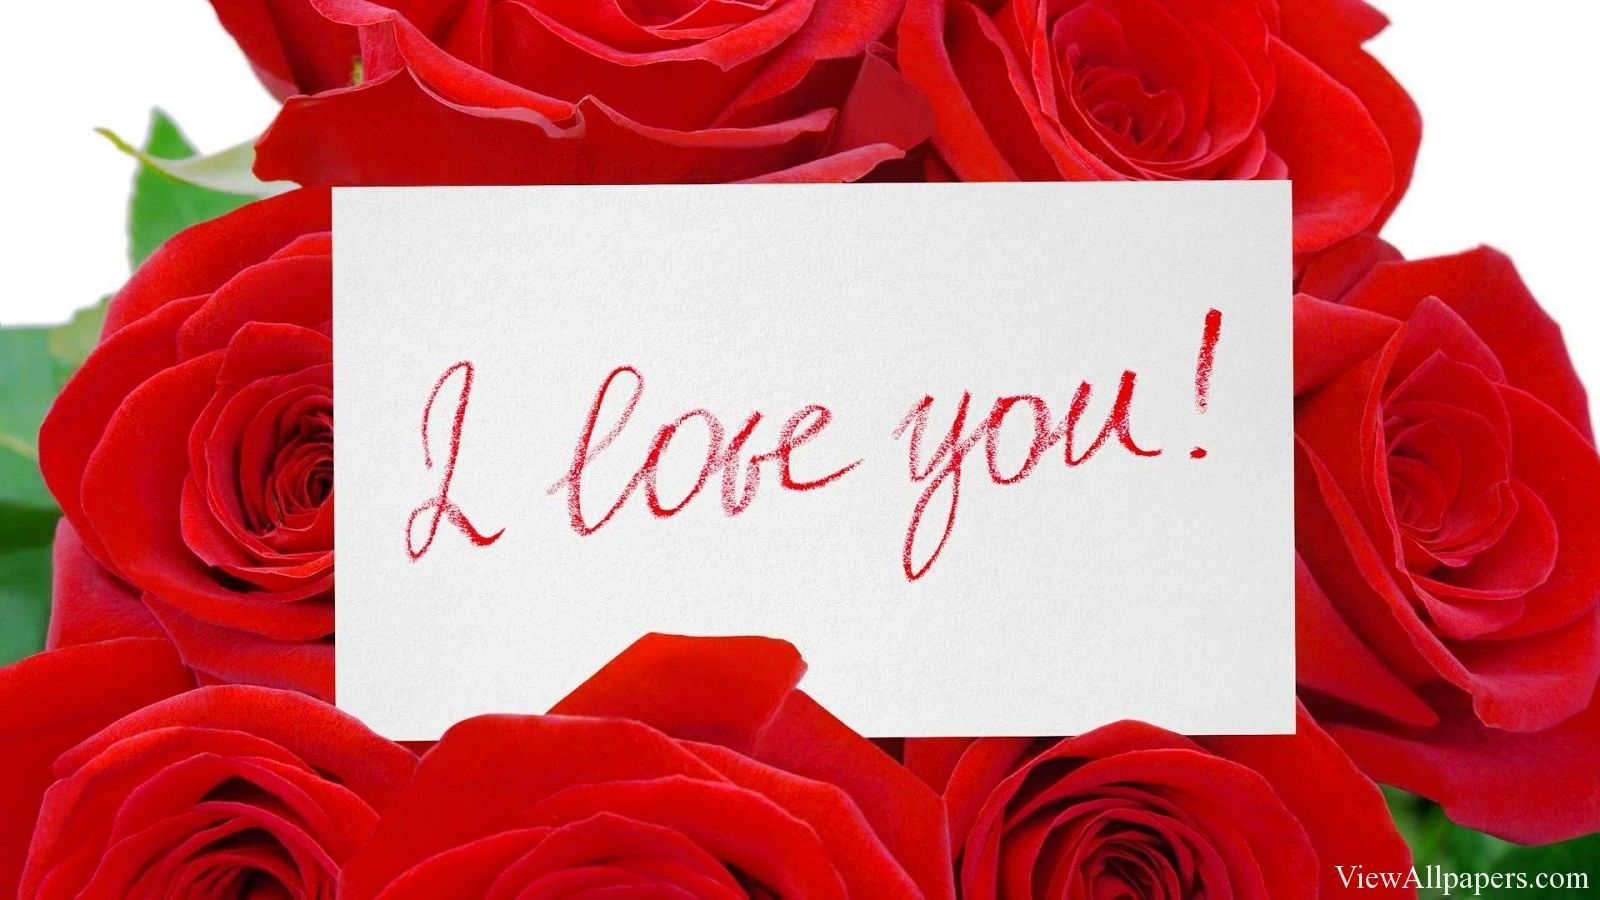 I love you red roses flowers hd wallpapers happy